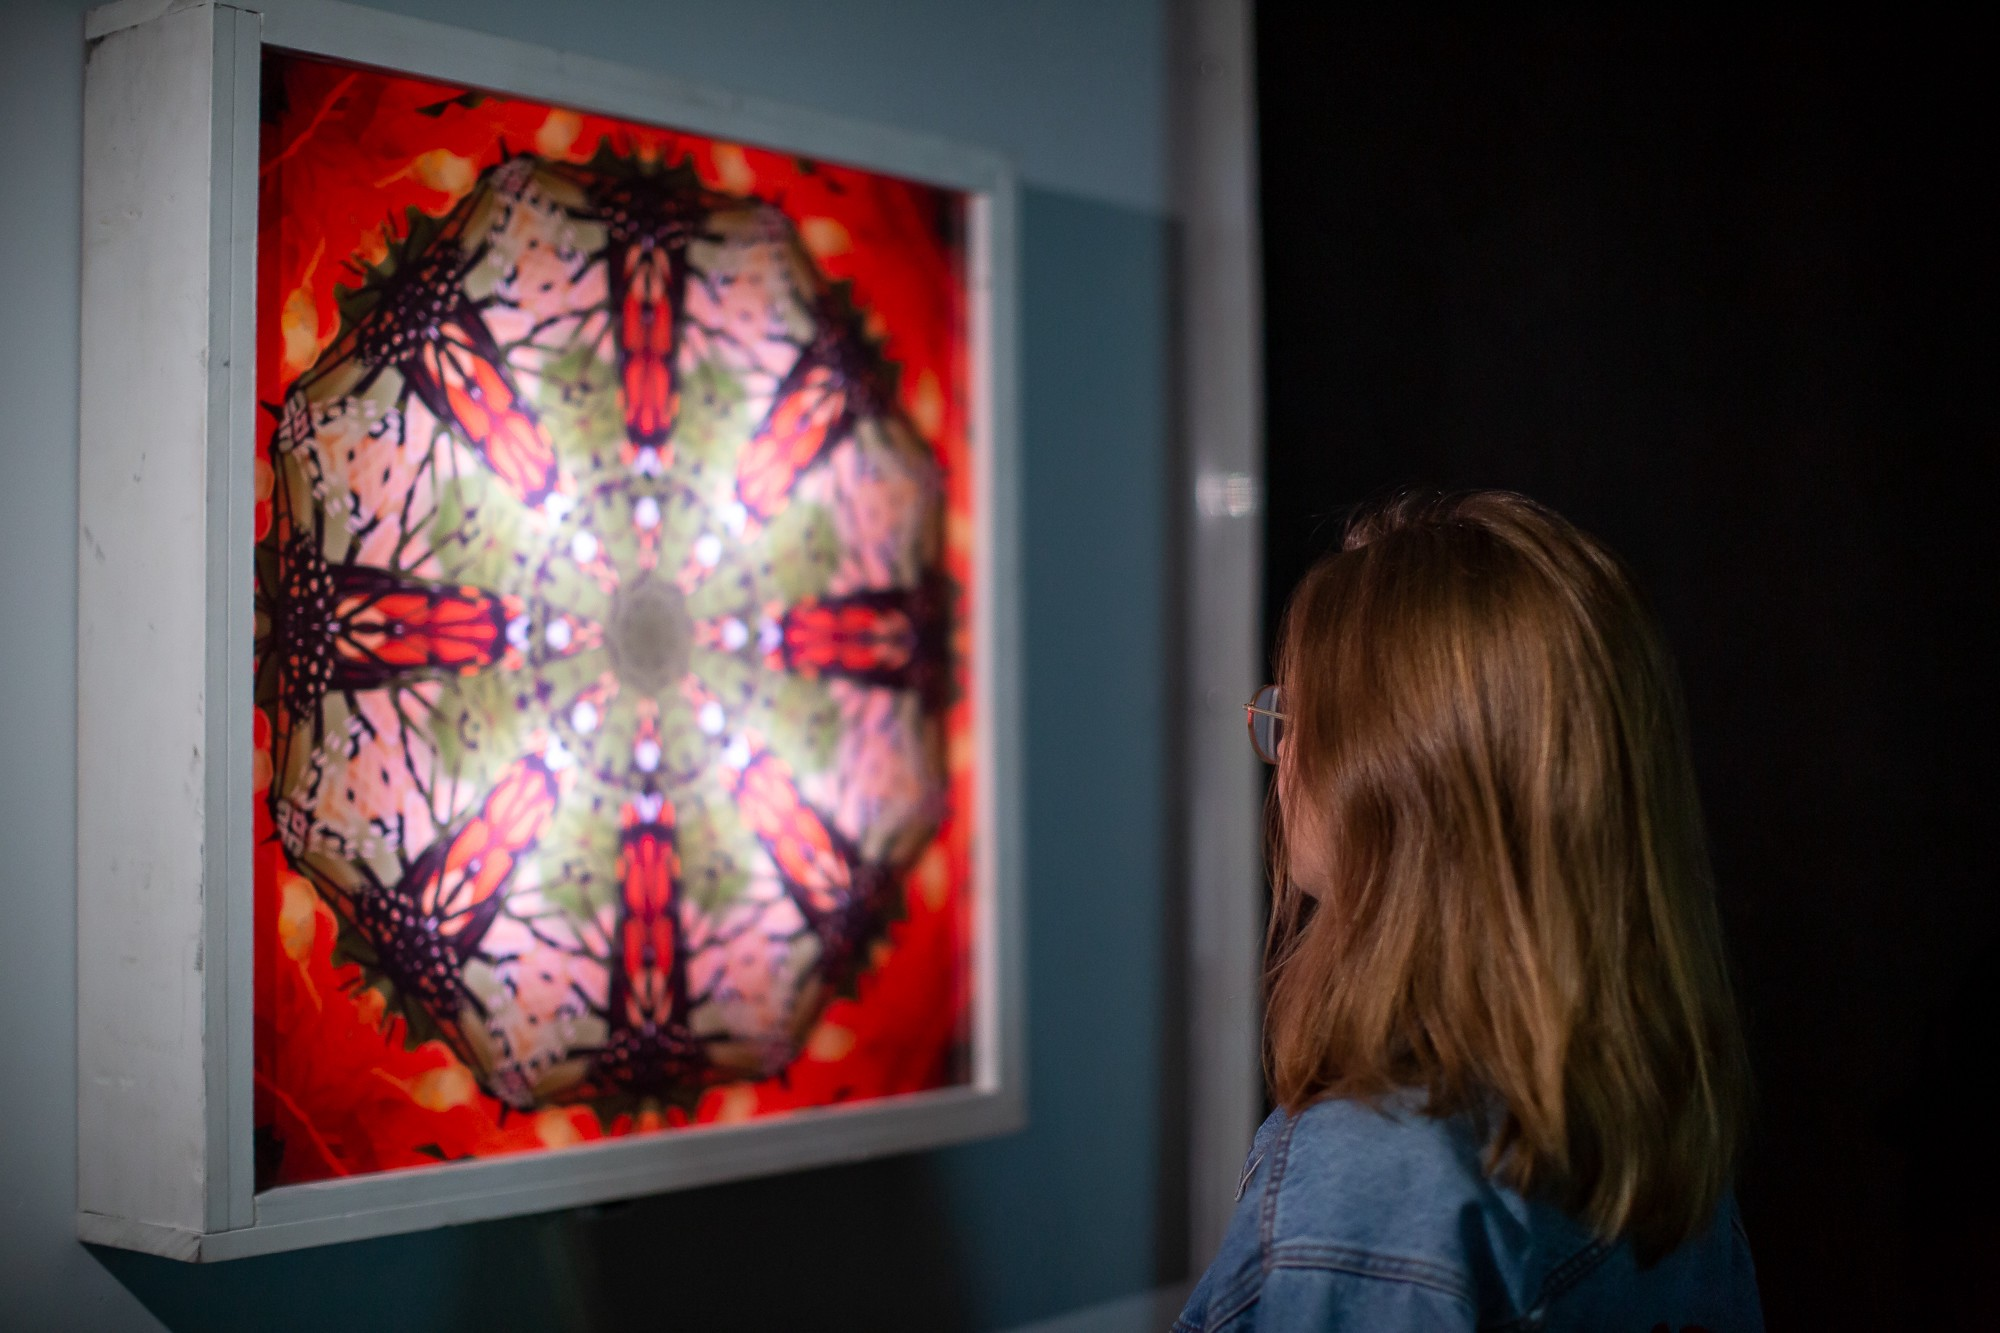 A woman looks at one of Steve's pieces from the Hive series. It's a red square with kaleidoscope-like fractals of a butterfly